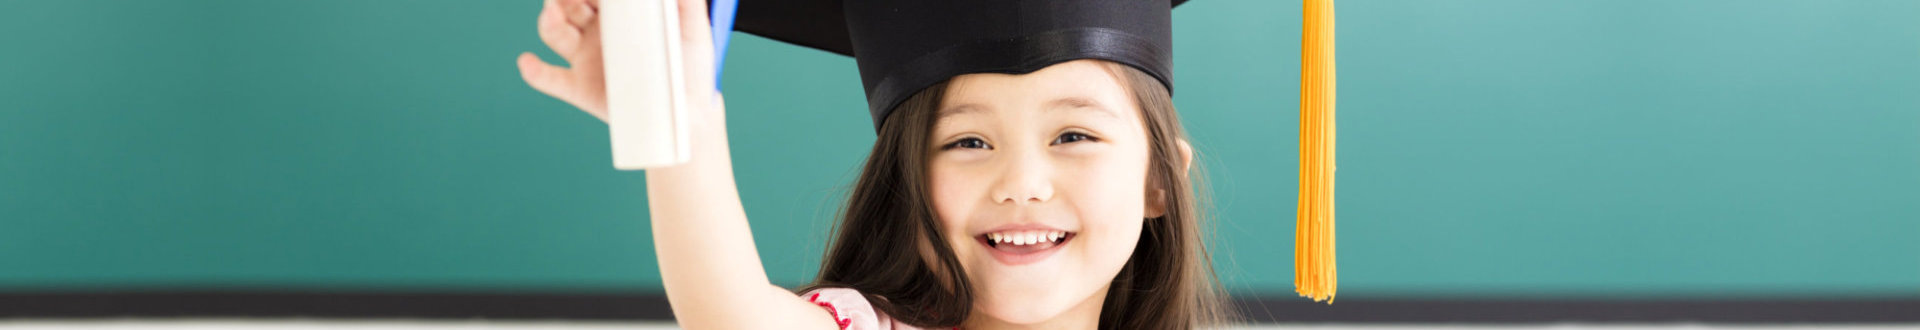 little girl wearing a graduation cap